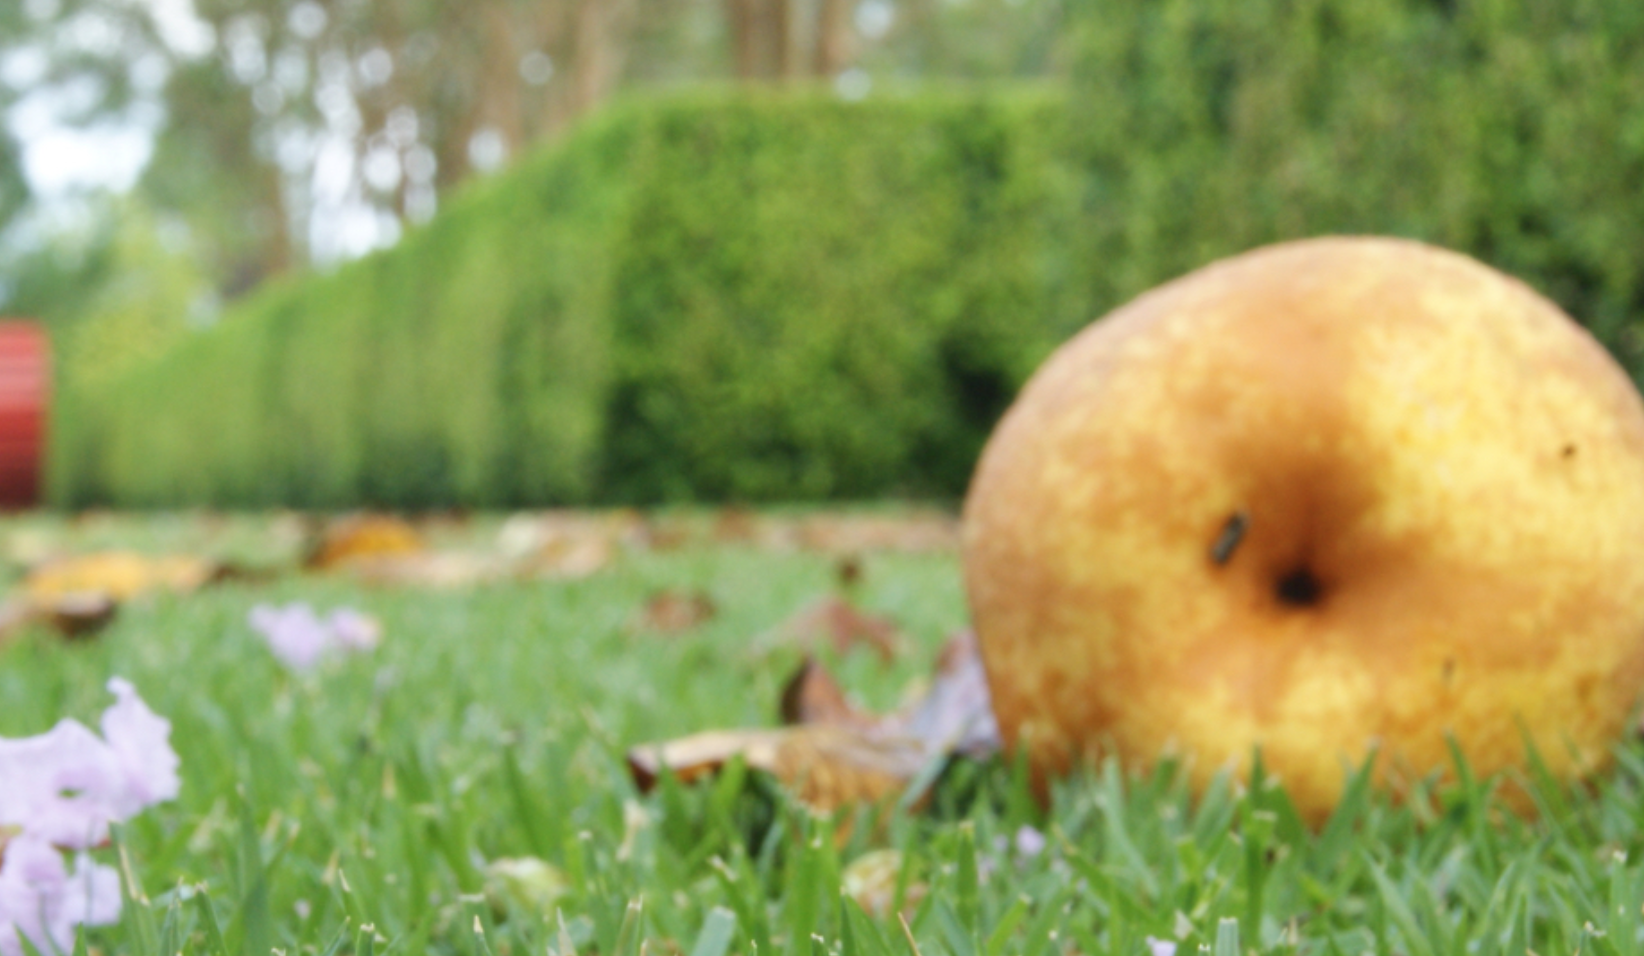 One caveat to foodscaping is that fruits, like this old fashioned sand-pear, can fall onto lawns, cars or friends.